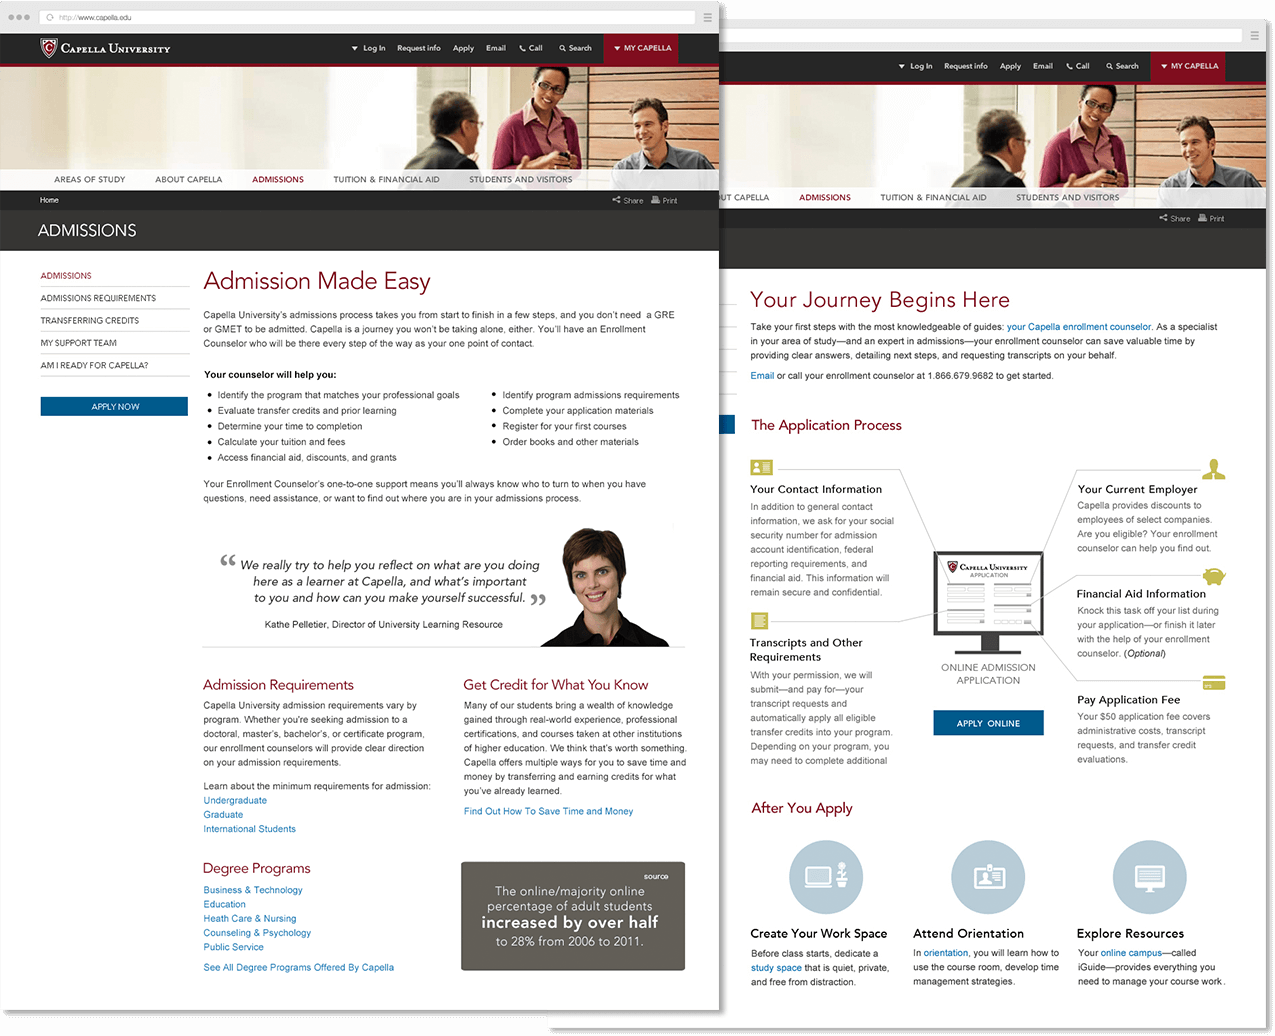 Capella.edu Admissions